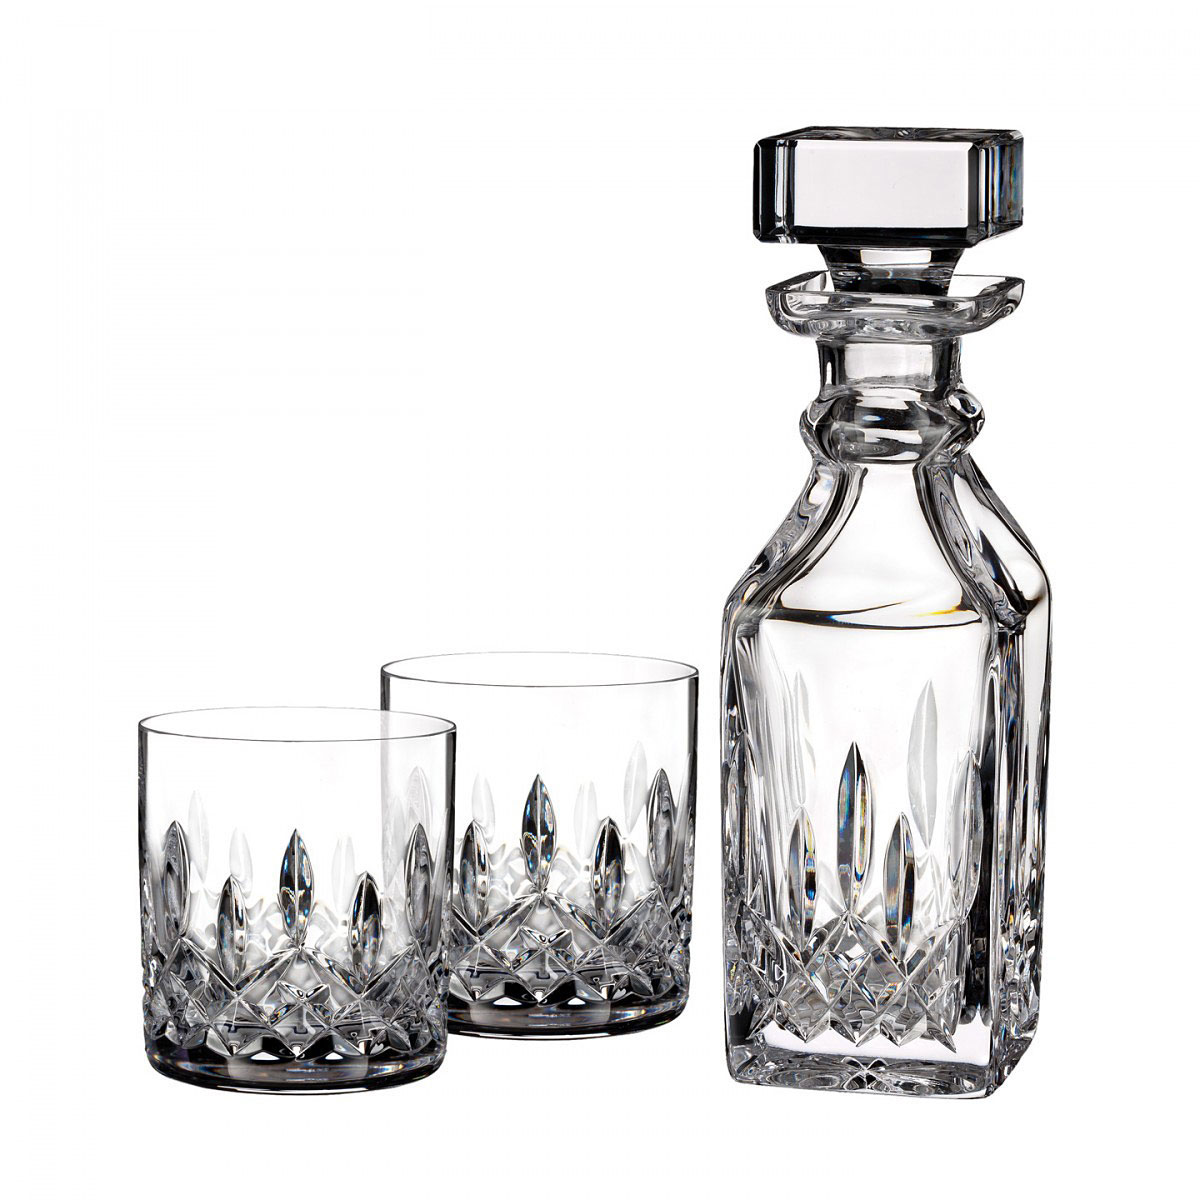 Waterford Crystal, Lismore Connoisseur Square Crystal Decanter and Tumbler Set